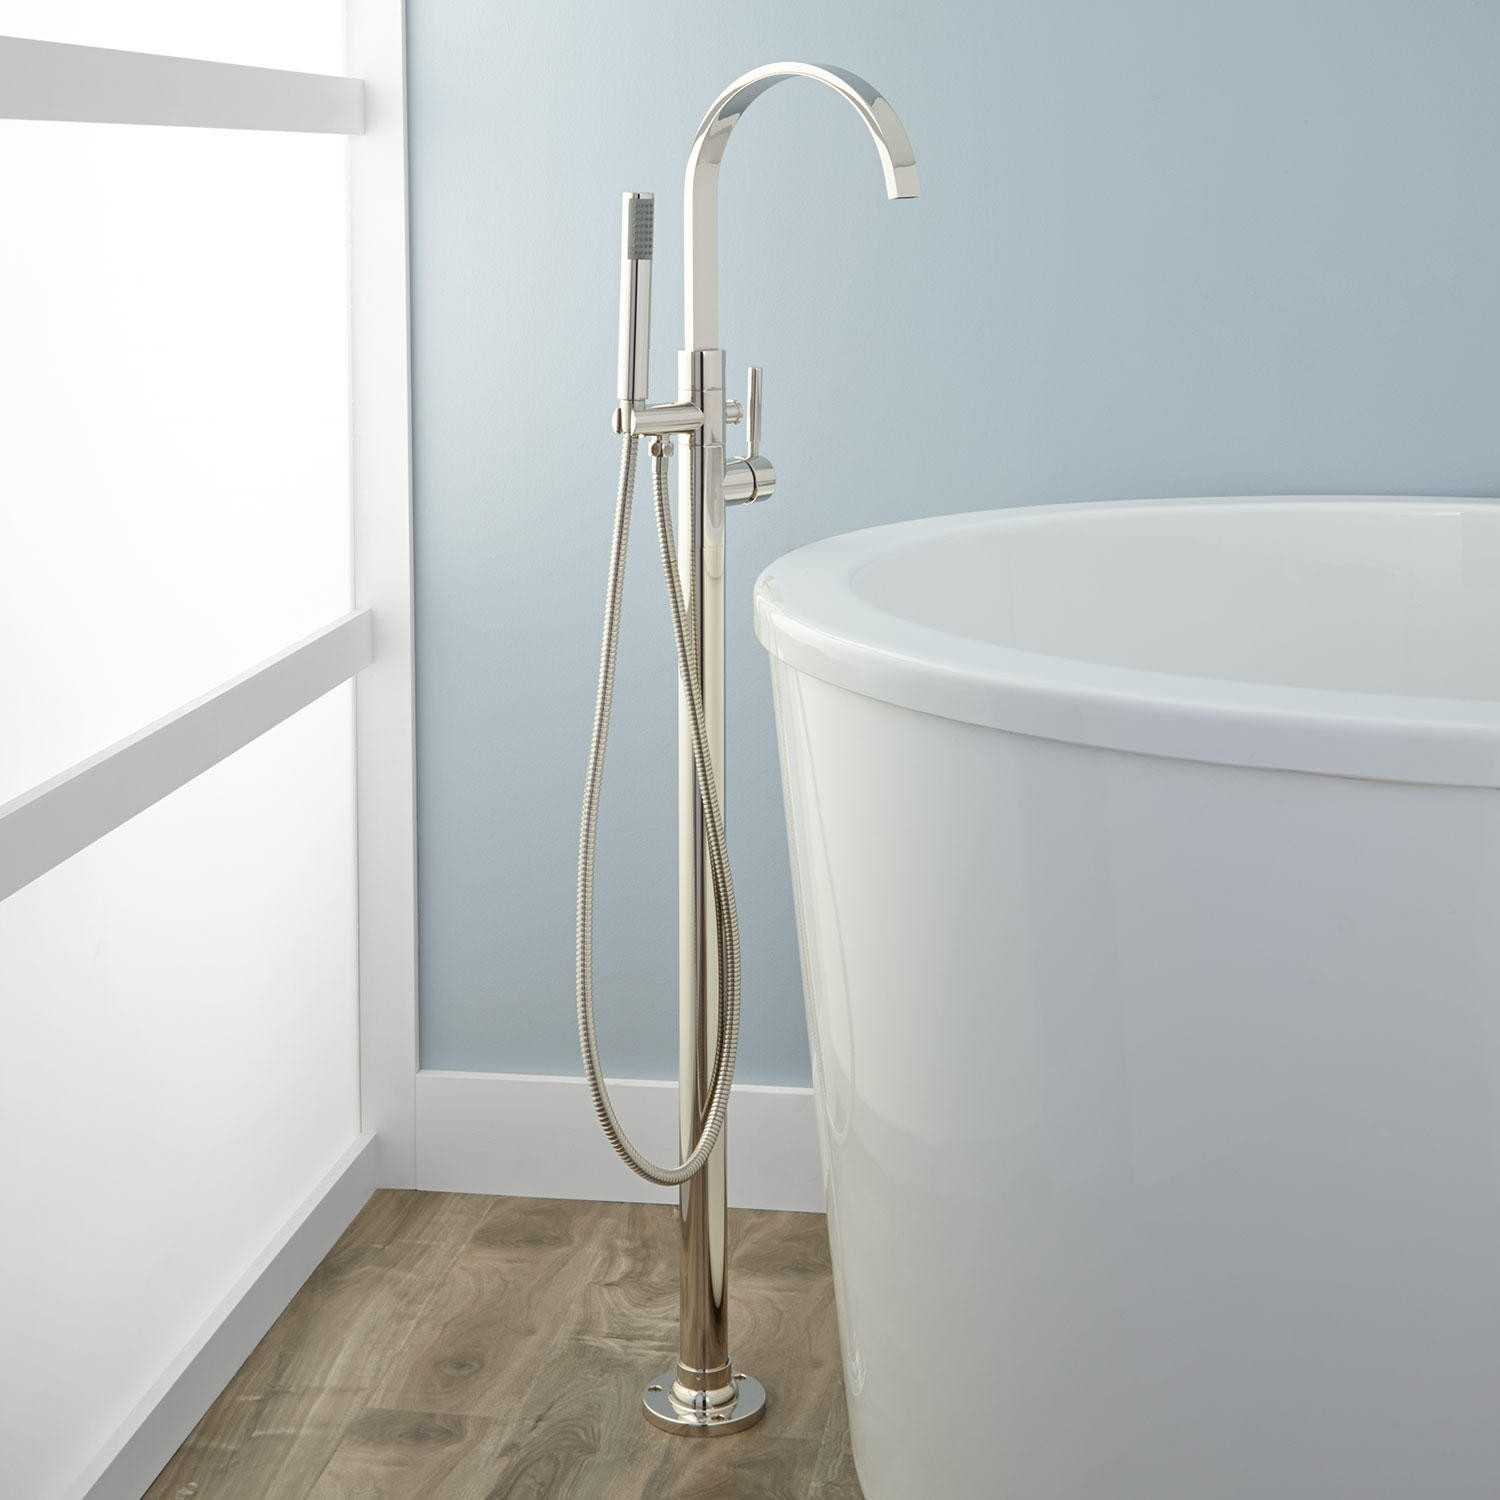 Ideas, floor mount freestanding tub fillers signature hardware within proportions 1500 x 1500  .